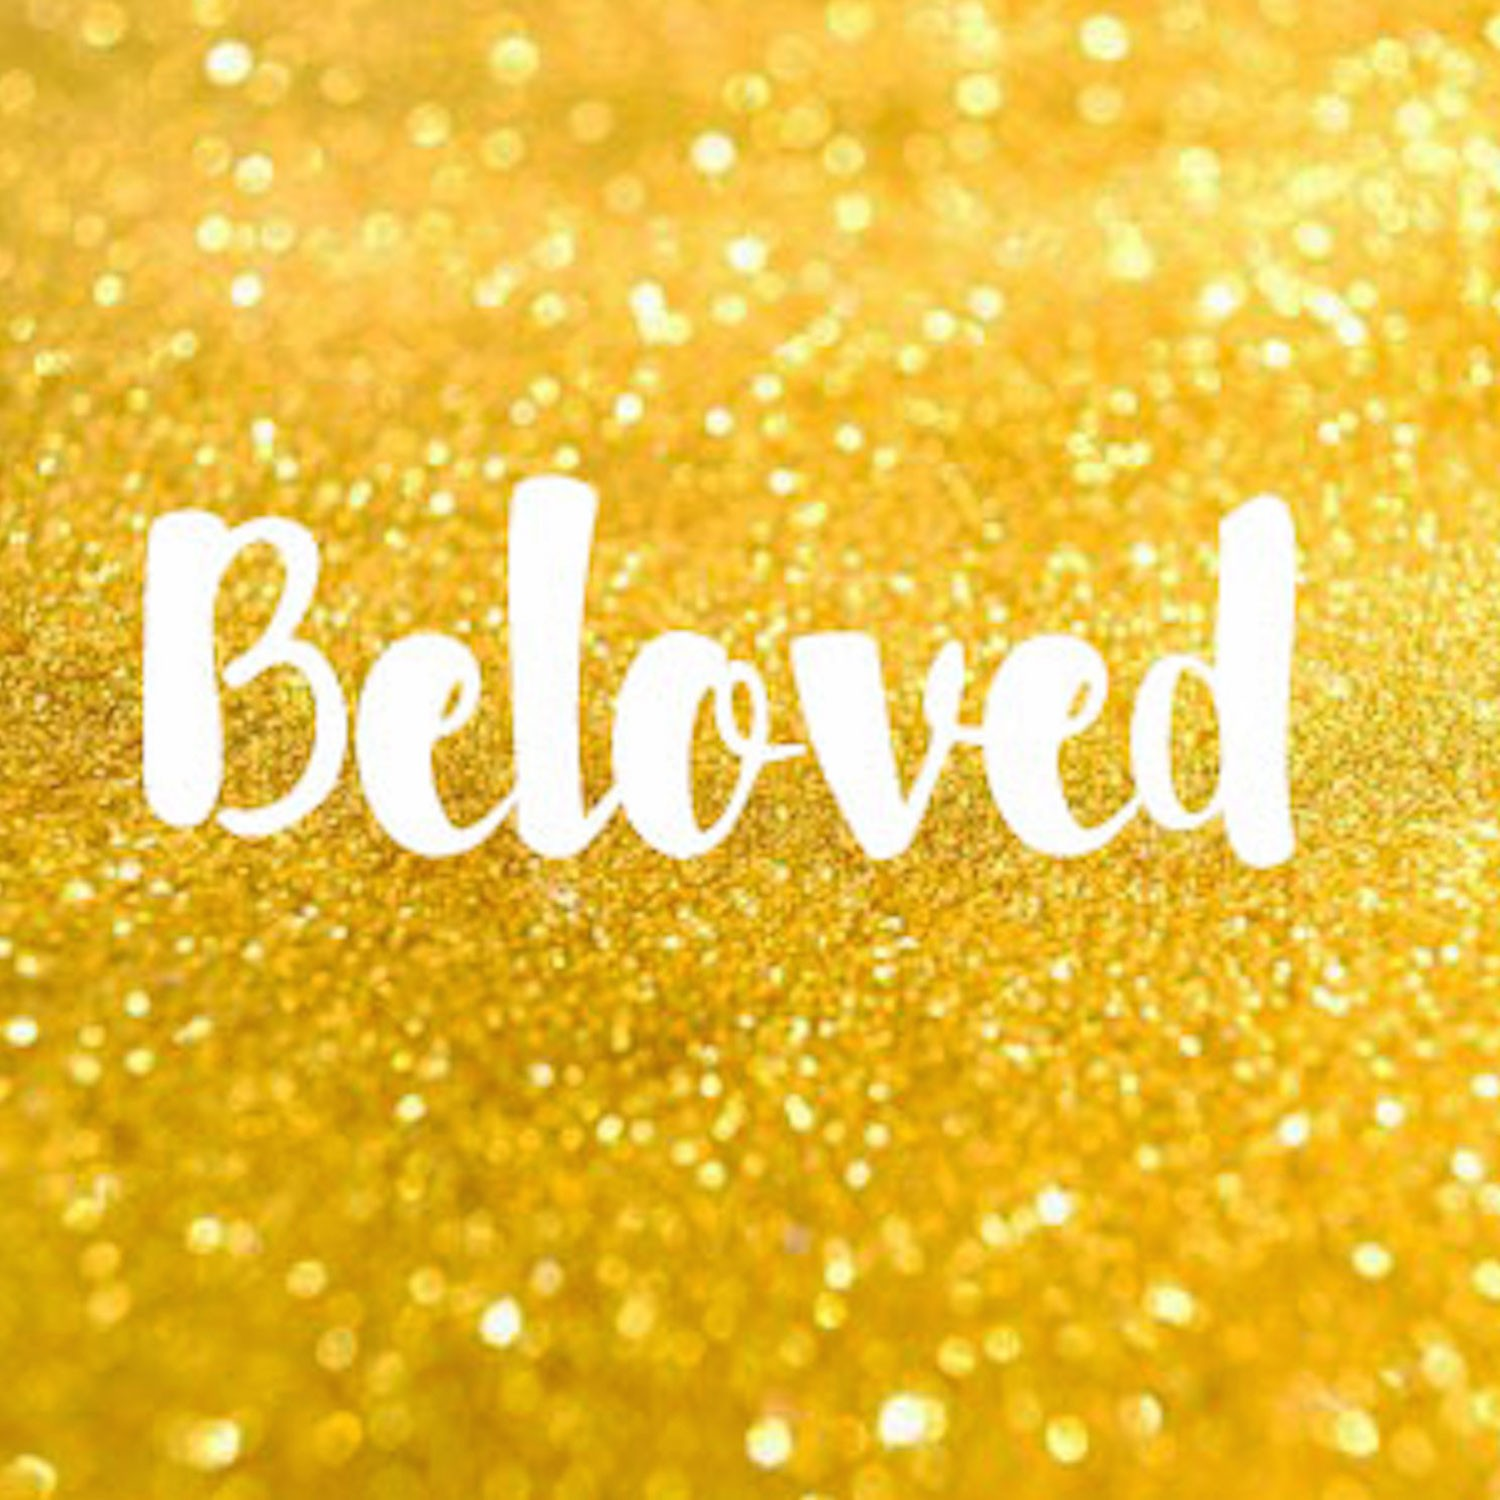 Beloved | Josie Carignan